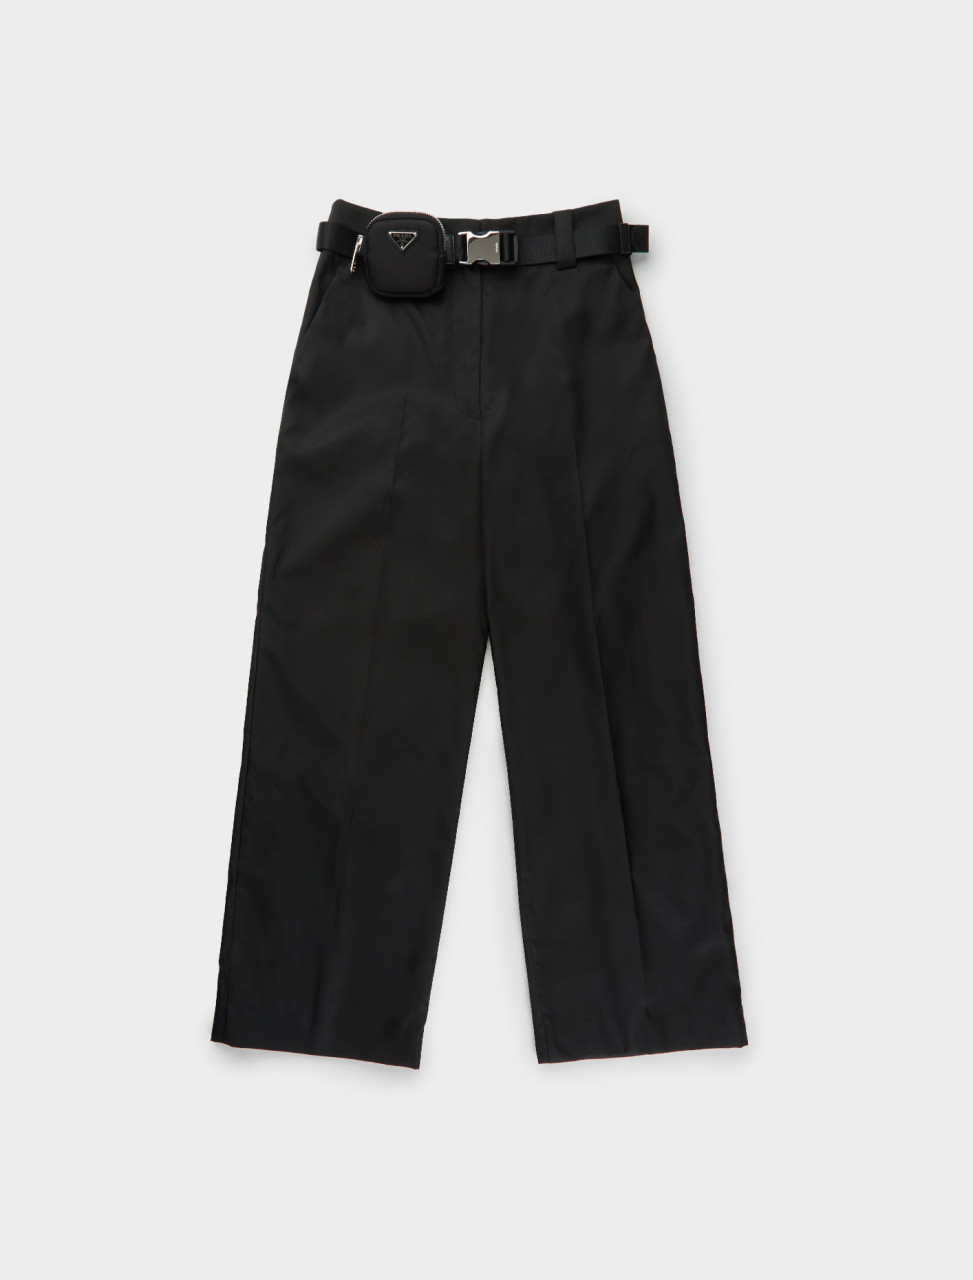 242-22H823-1WQ8-F0002-S-202 PRADA RE NYLON BELTED TROUSER BLACK